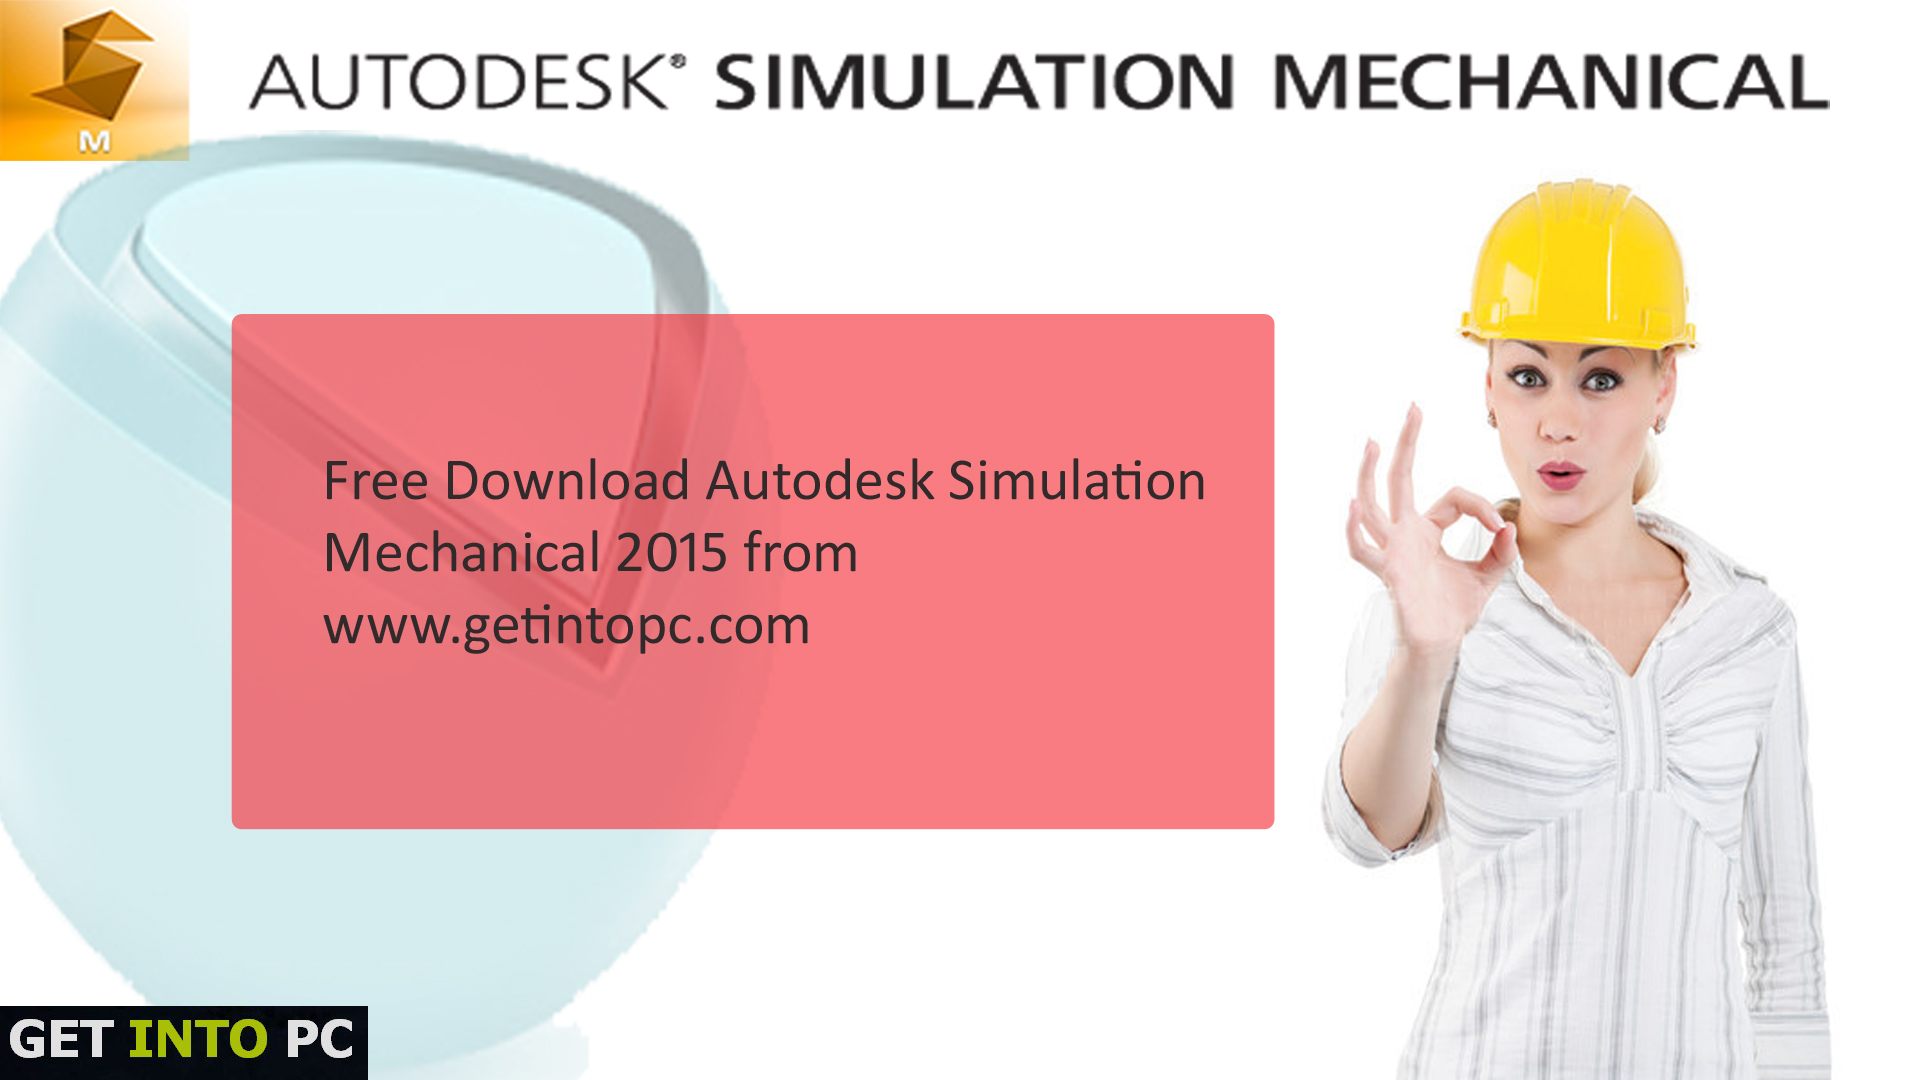 Autodesk Simulation Mechanical 2015 Free Download